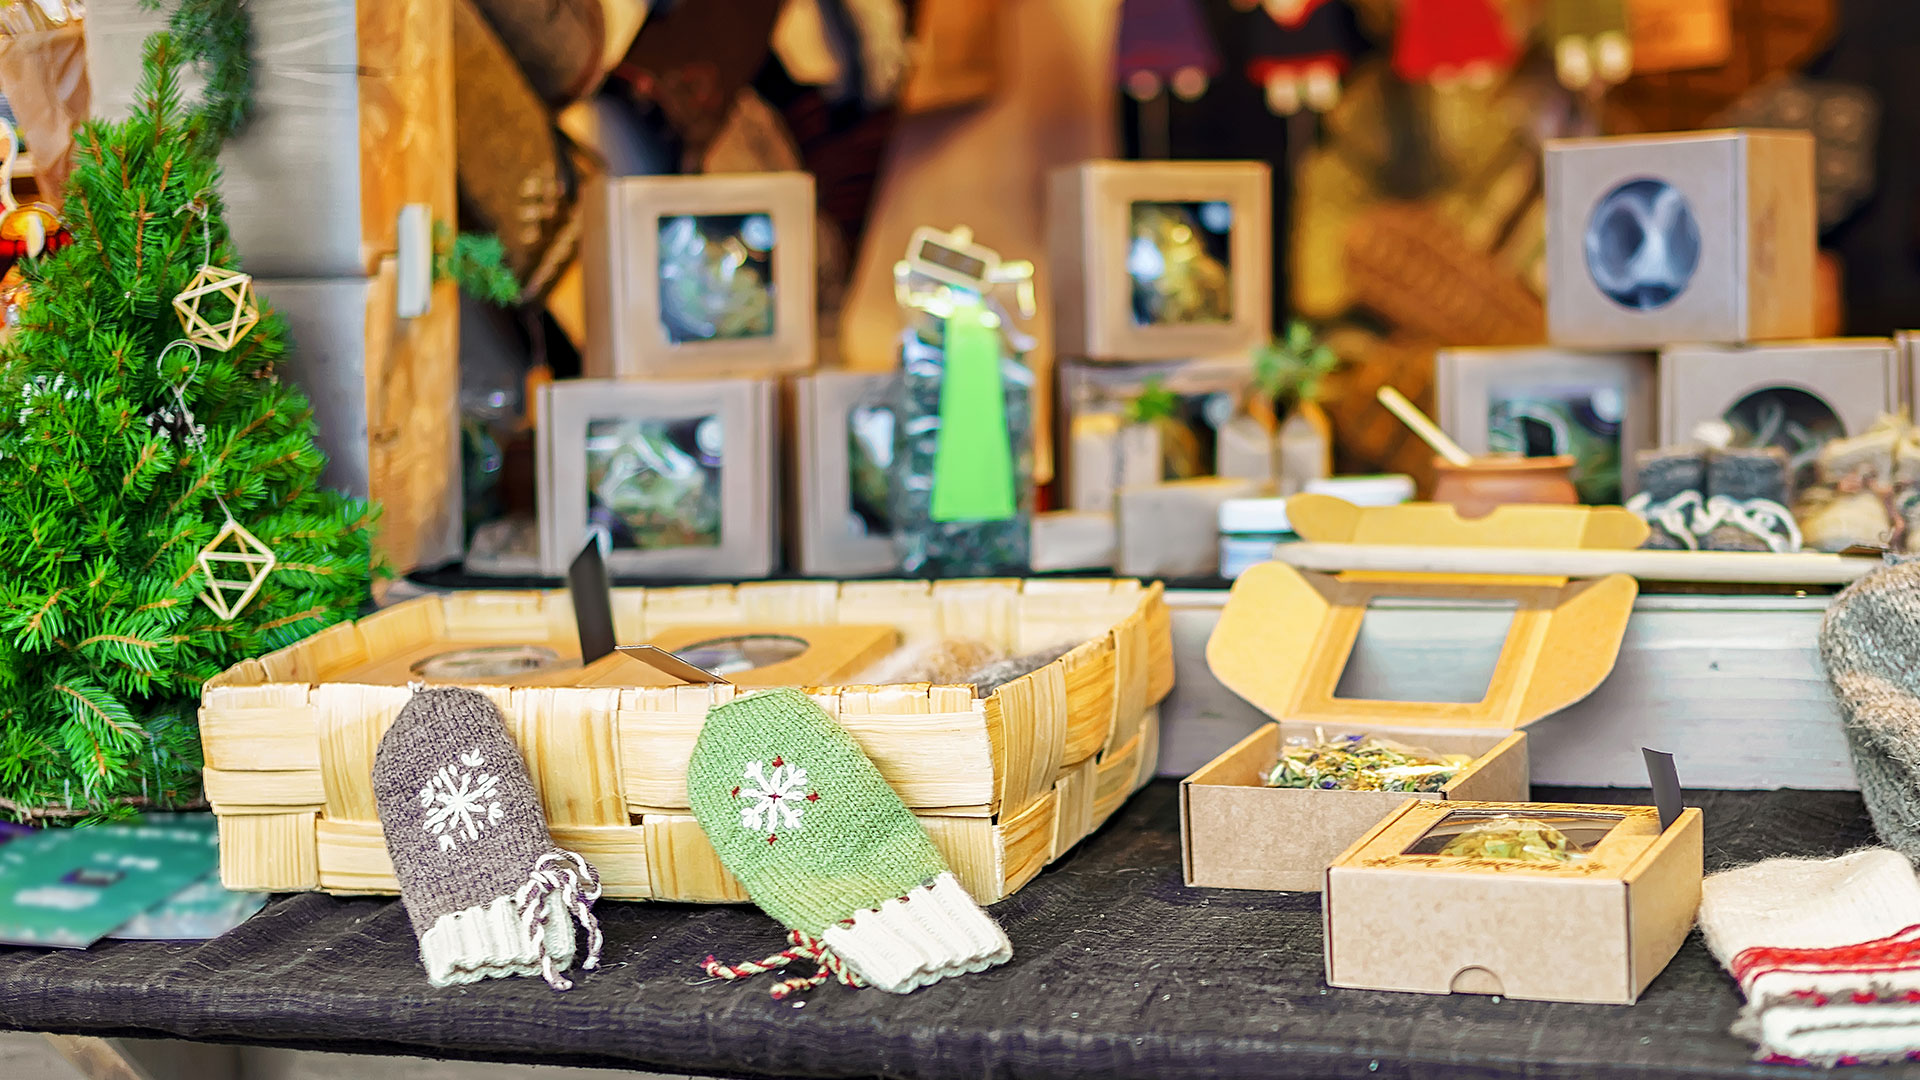 Best holiday craft fairs in the Greater Sacramento area